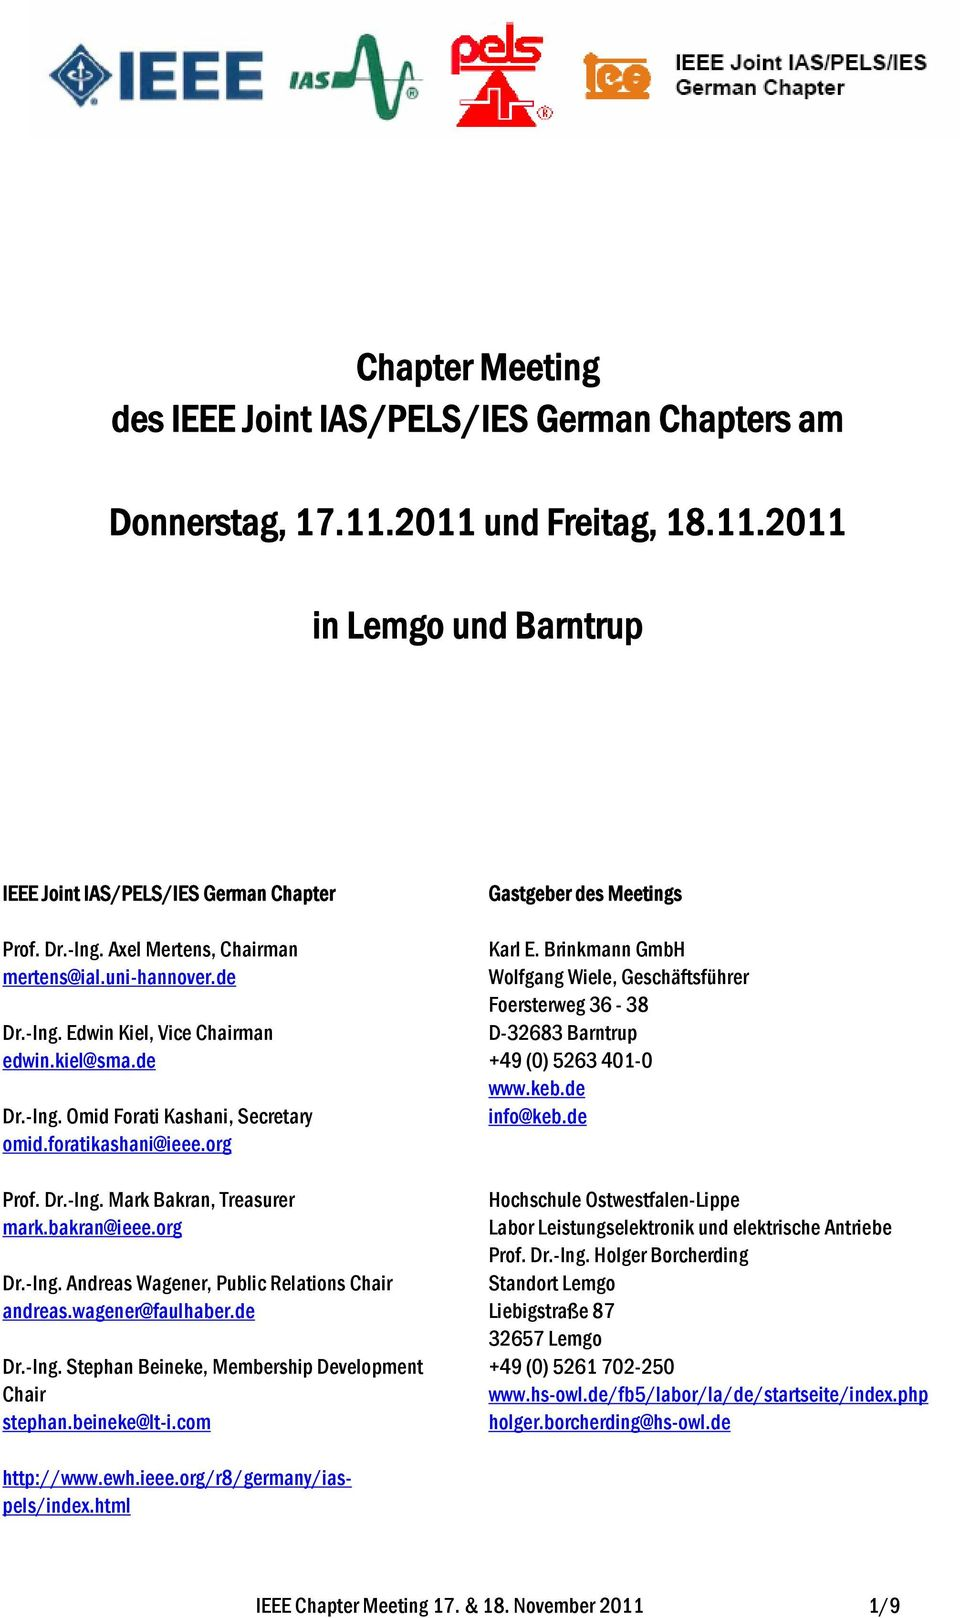 bakran@ieee.org Dr.-Ing. Andreas Wagener, Public Relations Chair andreas.wagener@faulhaber.de Dr.-Ing. Stephan Beineke, Membership Development Chair stephan.beineke@lt-i.